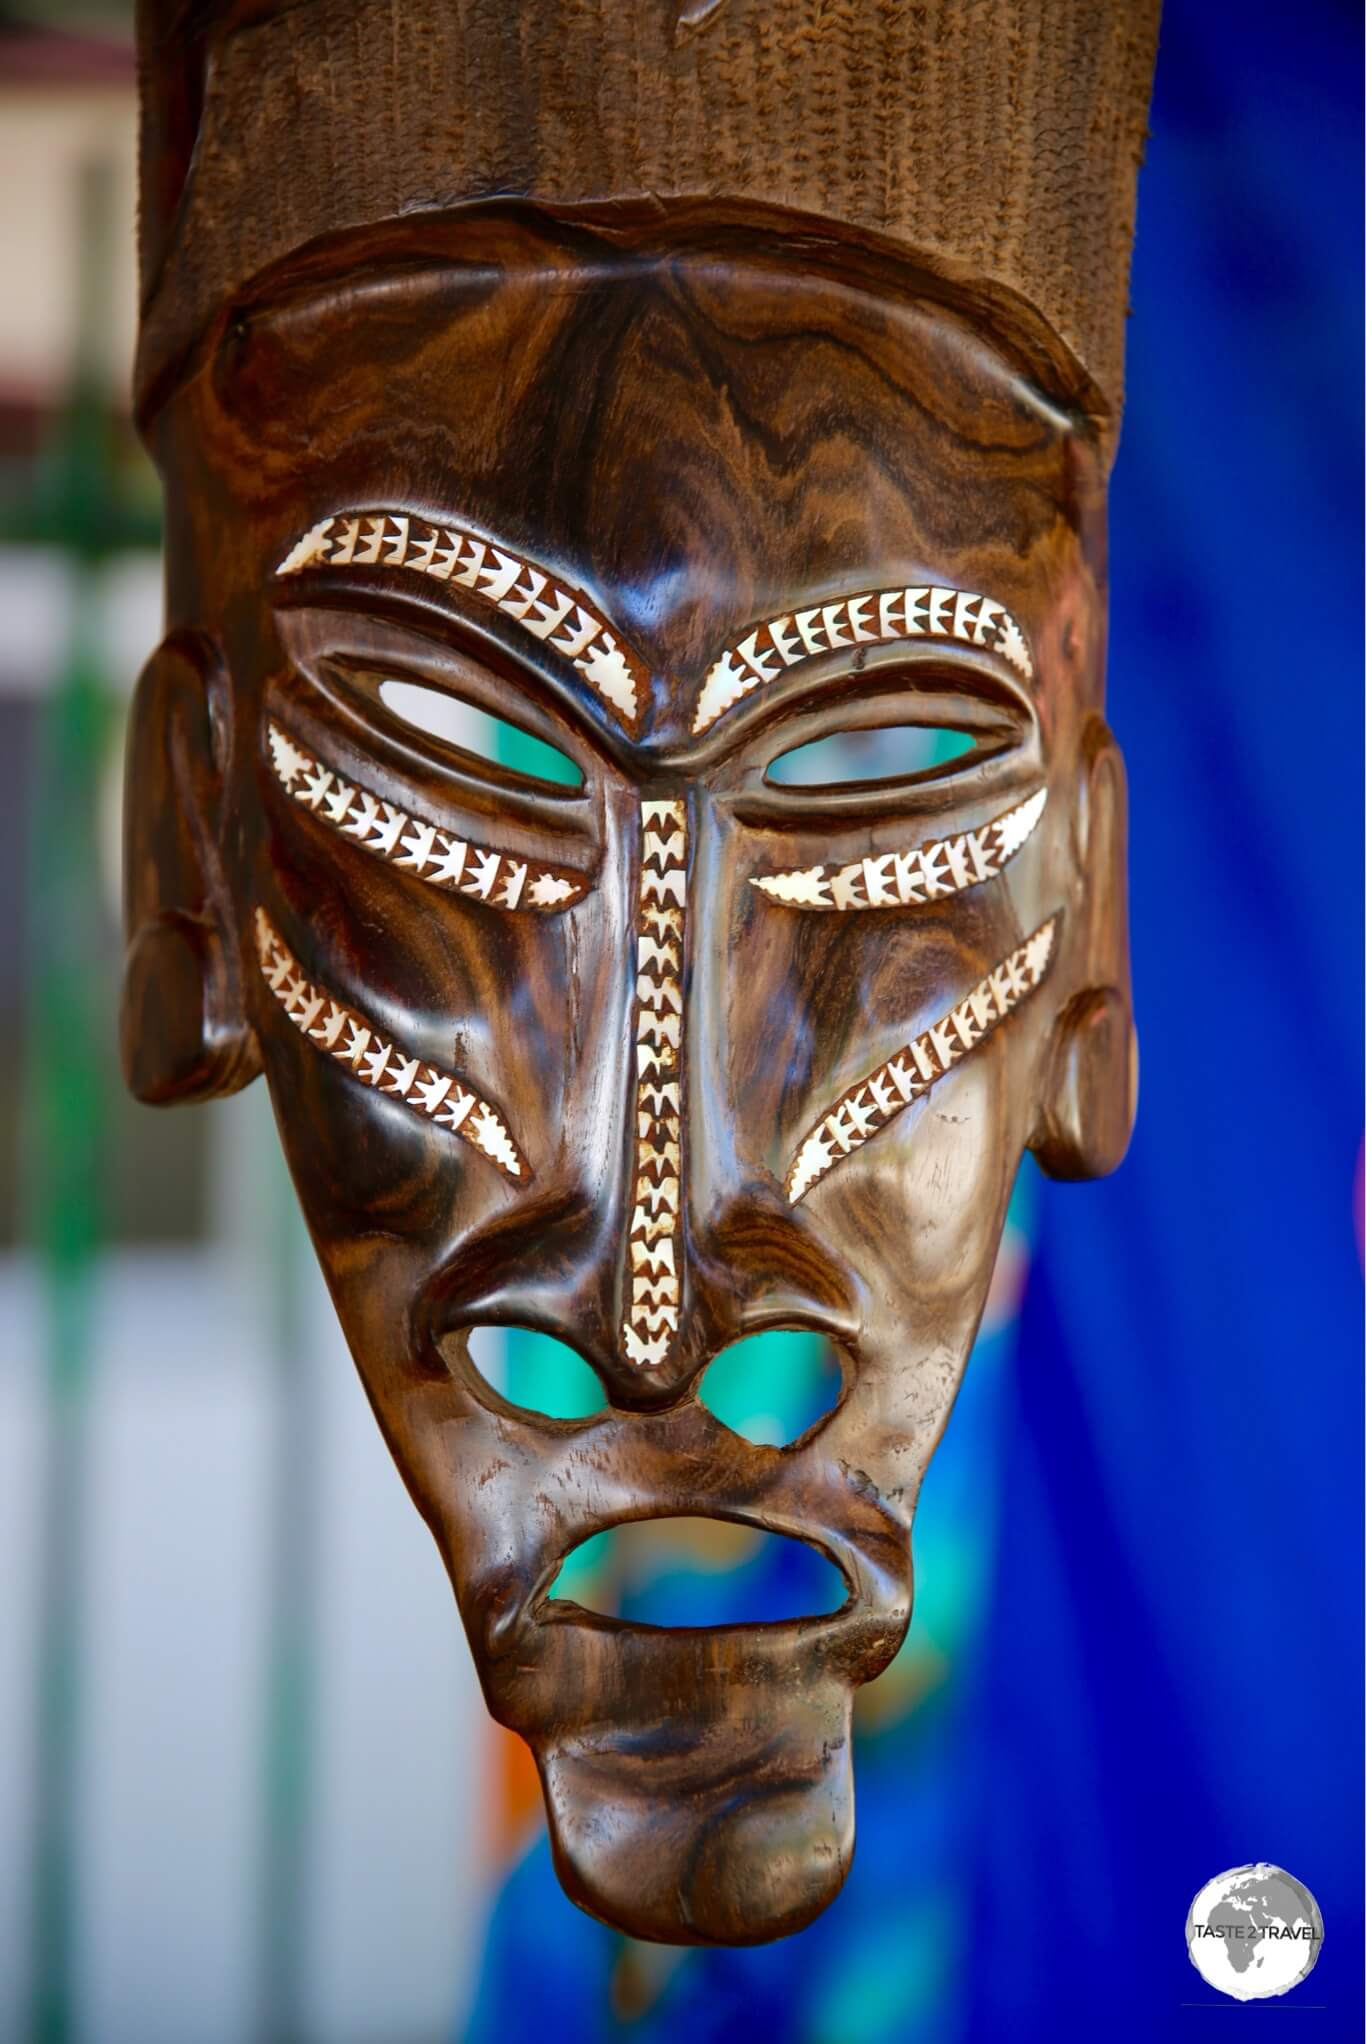 Carved masks are popular souvenirs.